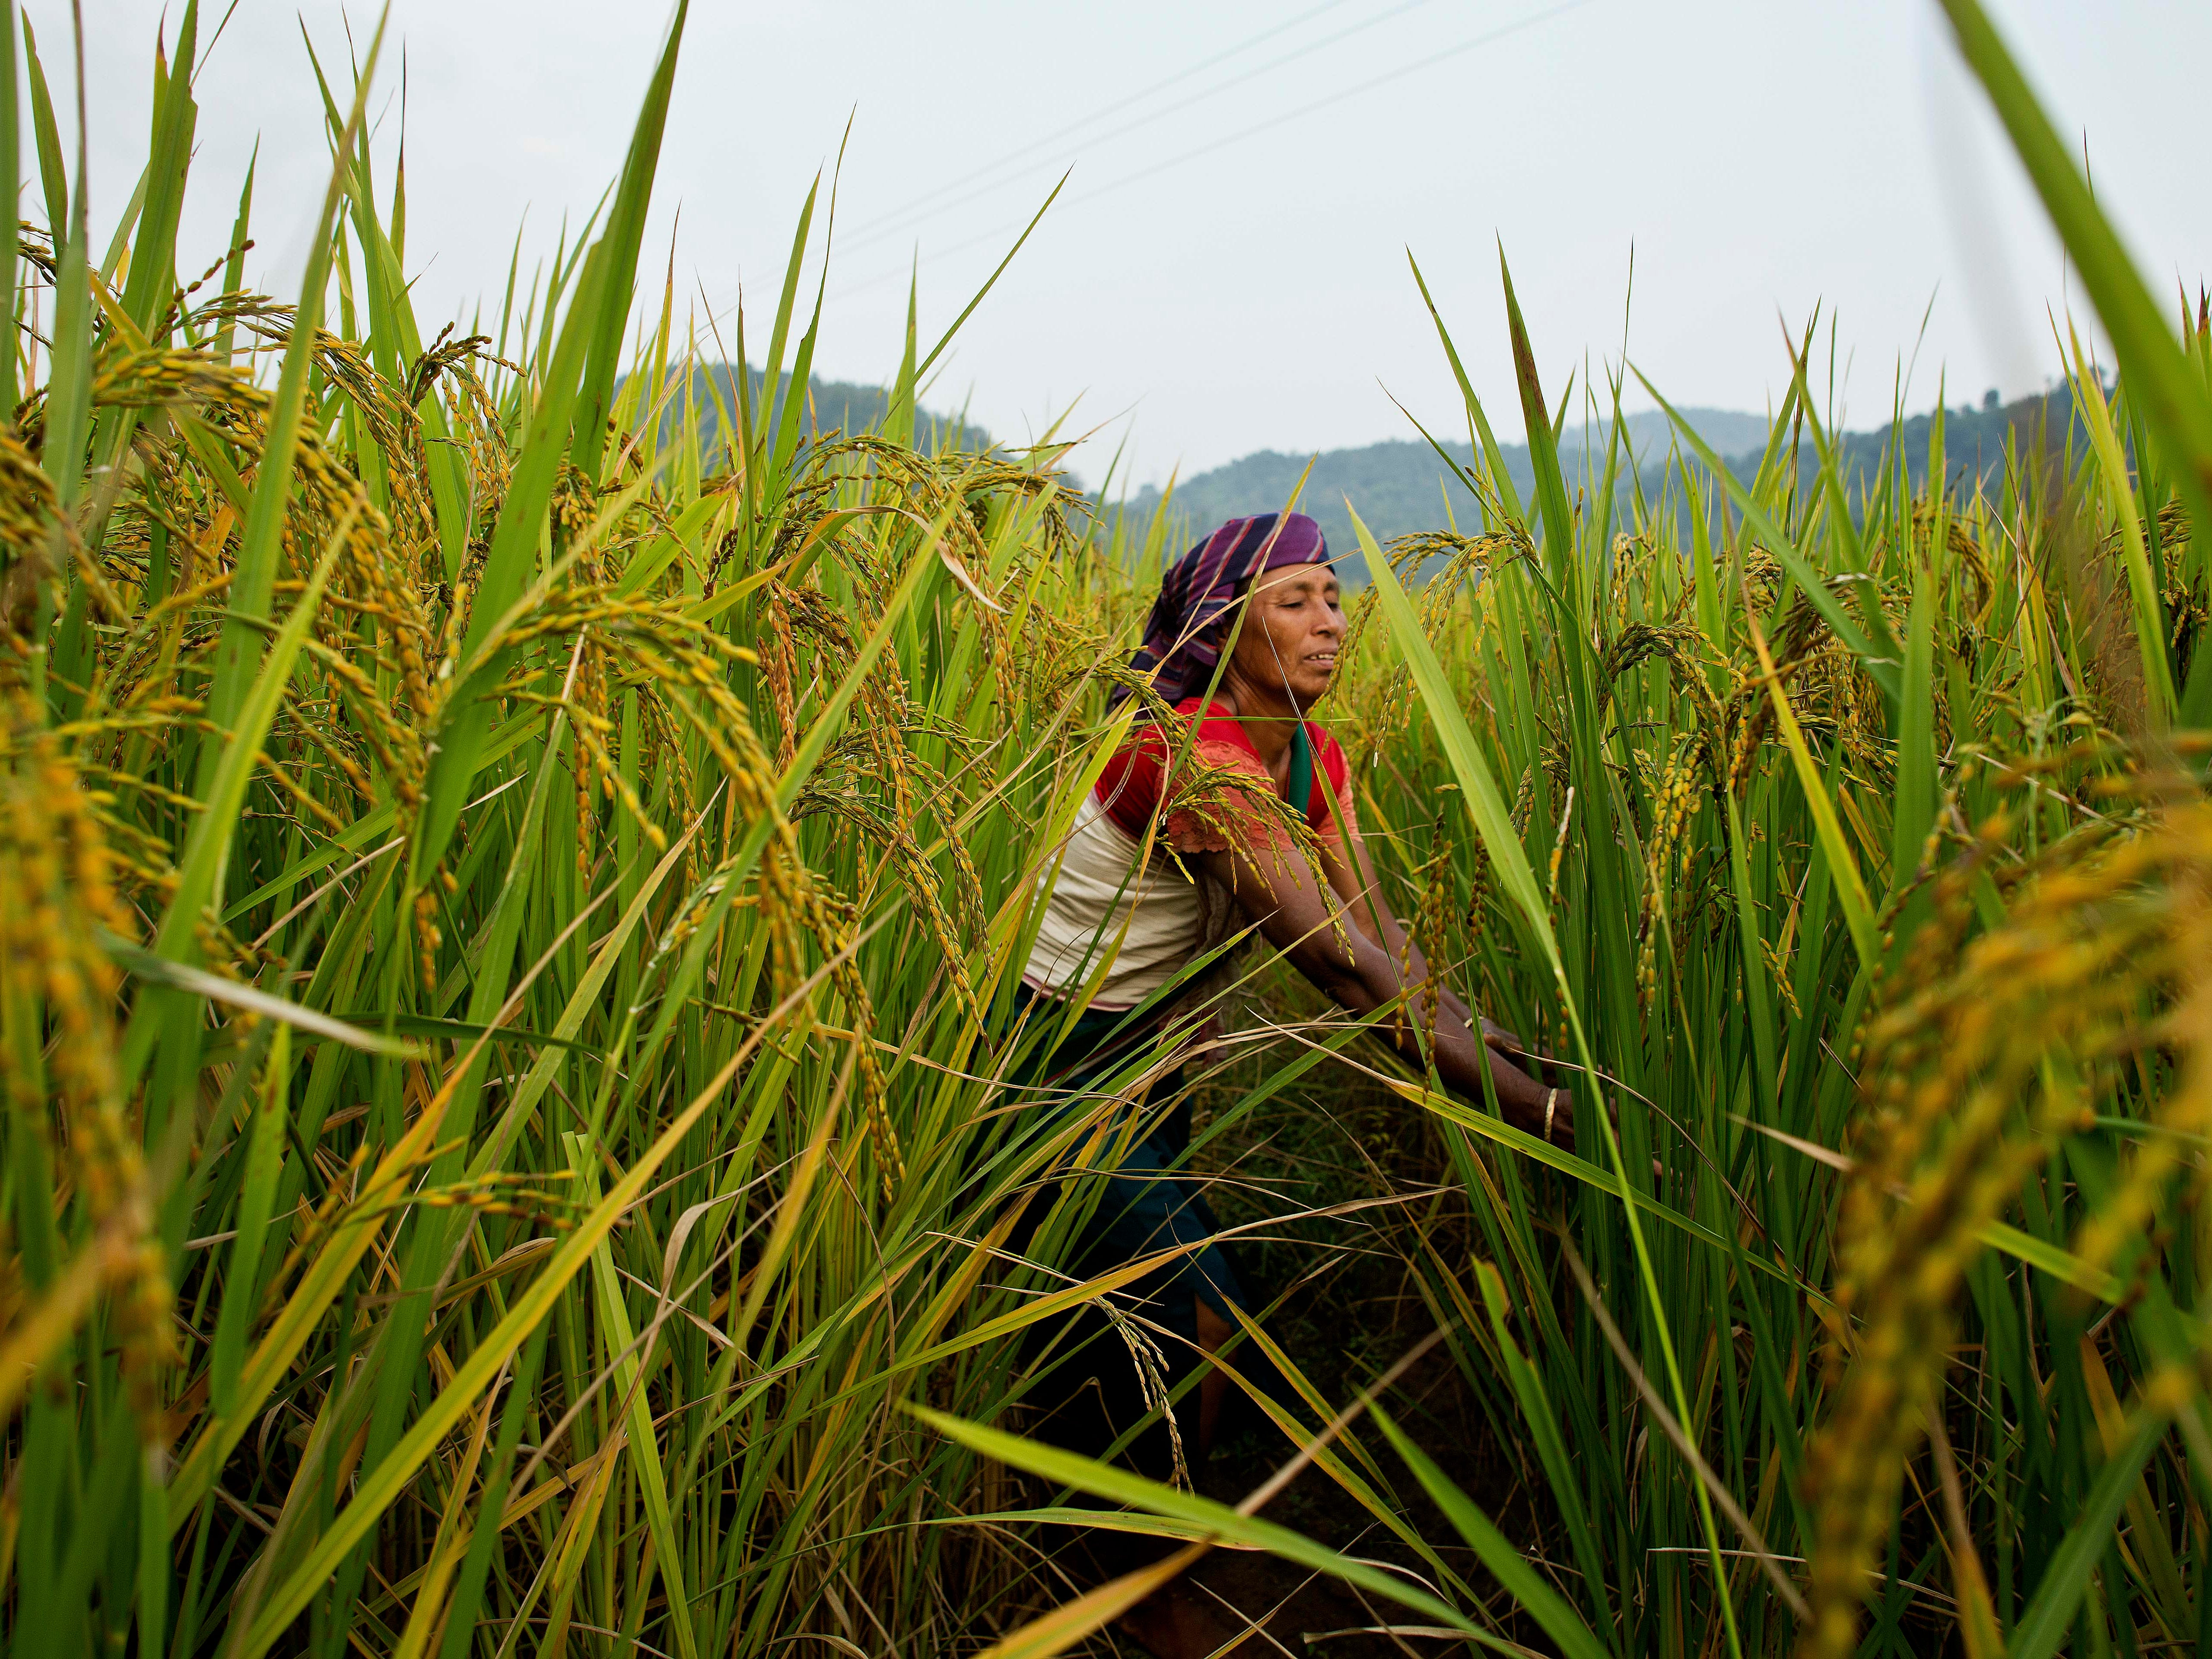 An Indian Khasi tribal woman works in a paddy field in Moronga village along the Assam-Meghalaya state border in India, Sunday, Nov. 4, 2018.